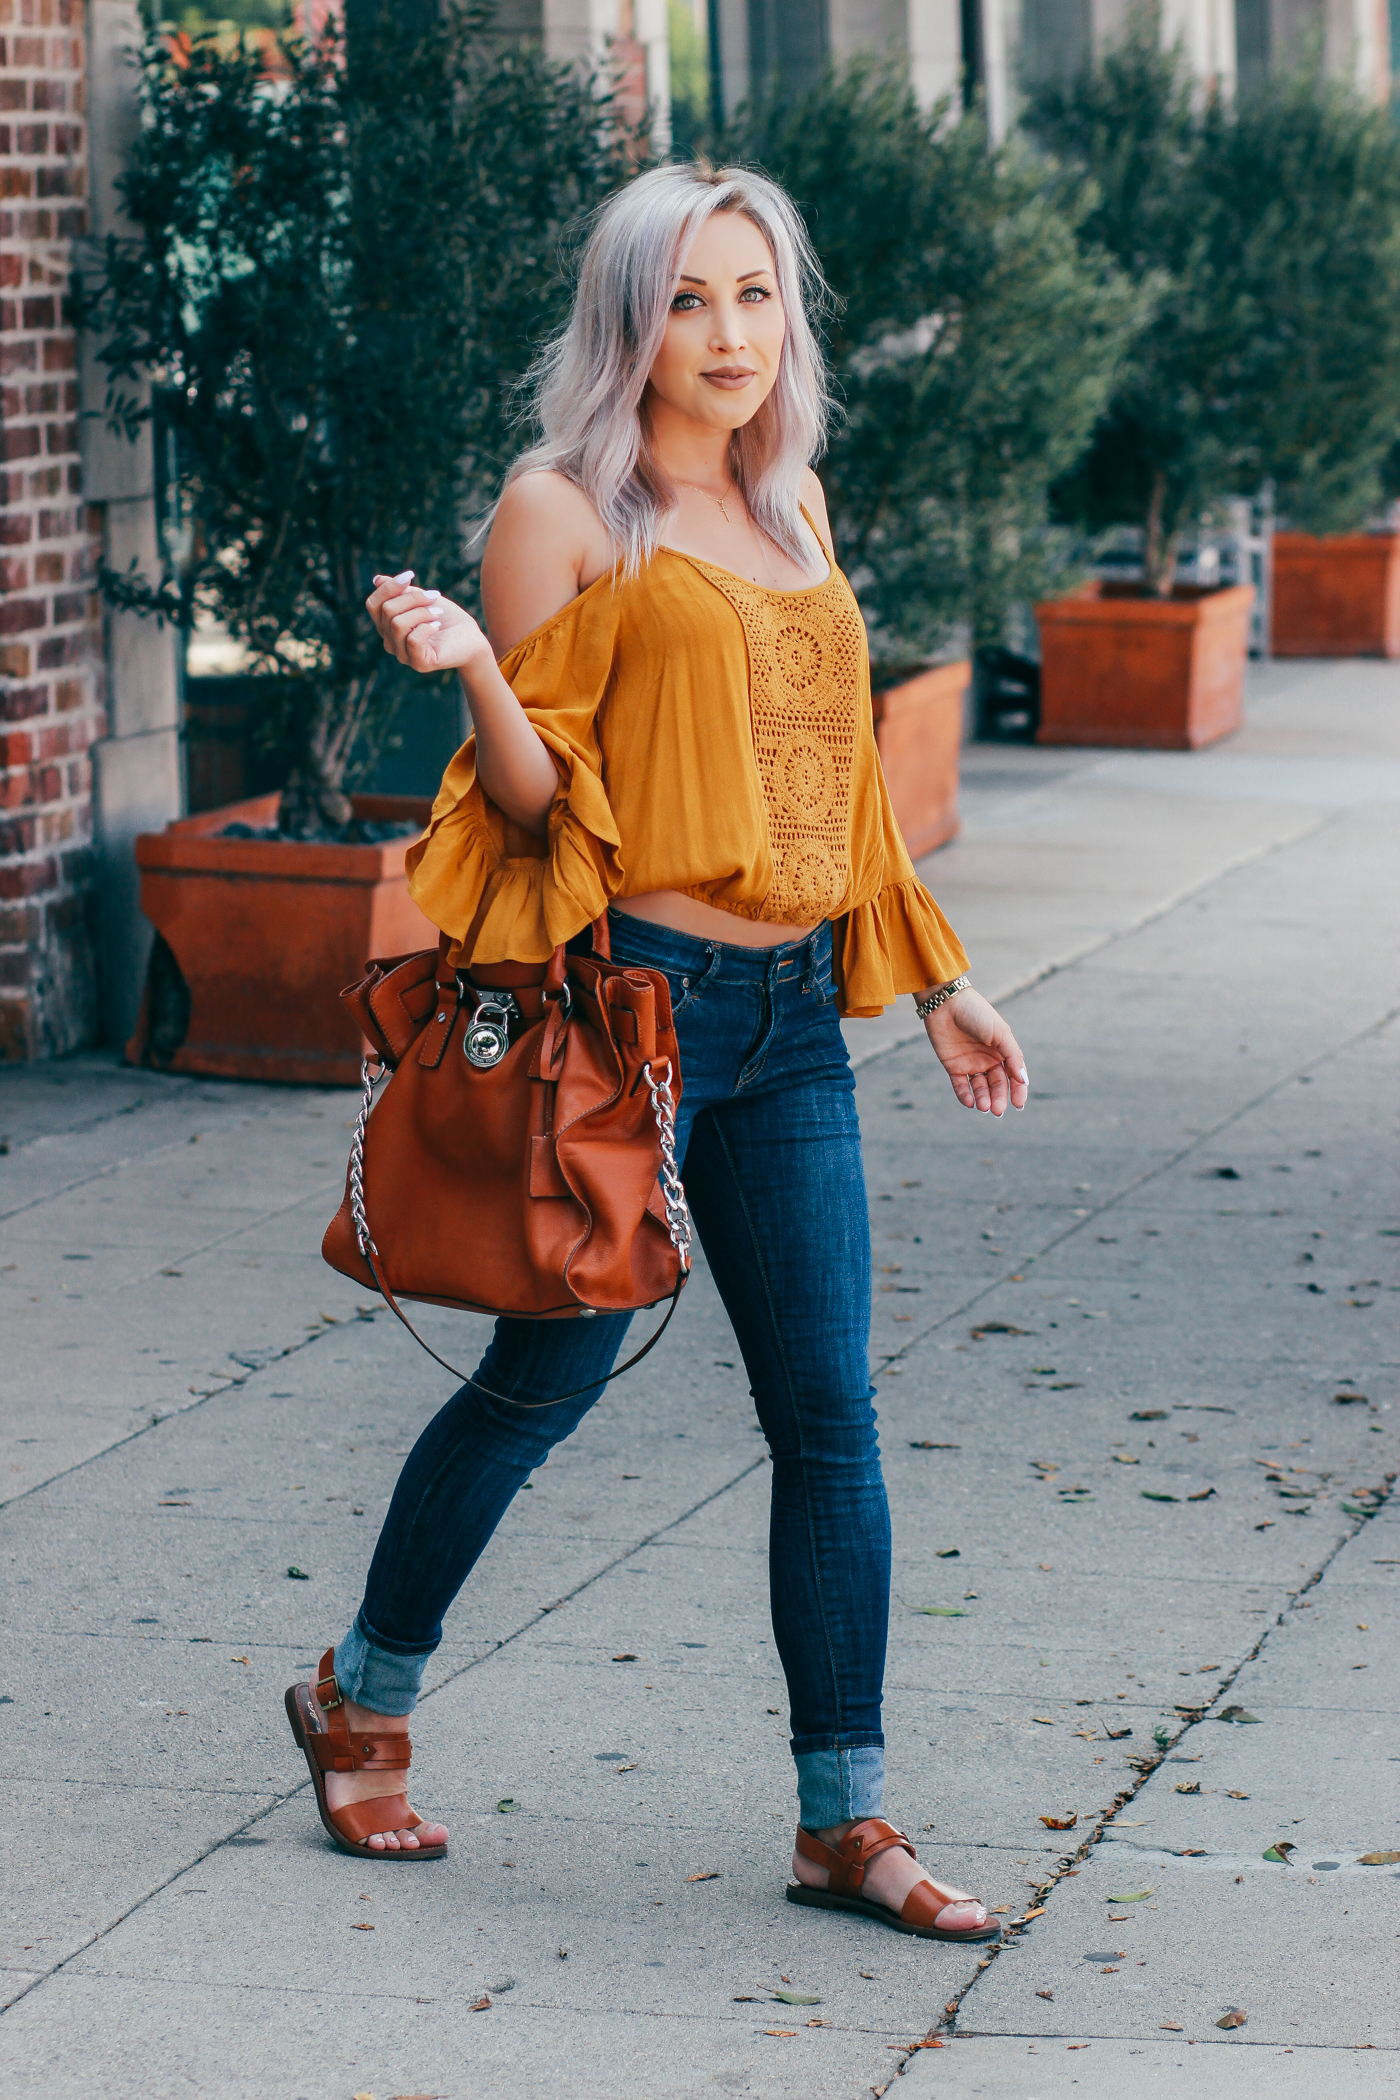 Blondie in the City | Off The Shoulder Top @Forever21 | Michael Kors Bag | Street Style | Outfits For Fall | Fall Wardrobe